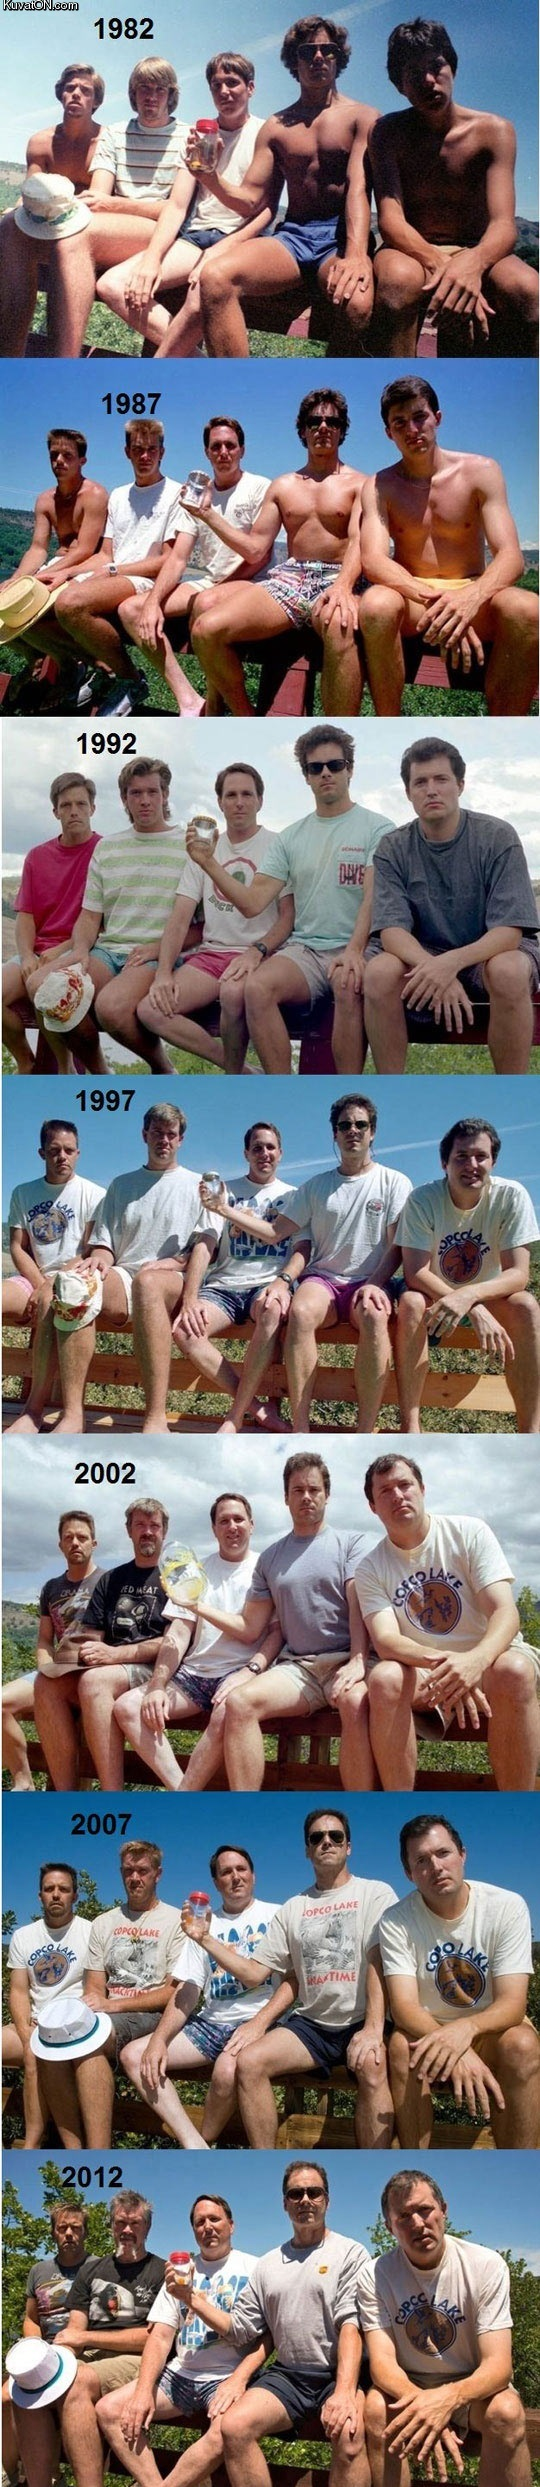 this_group_of_friends_took_a_picture_every_5_years.jpg